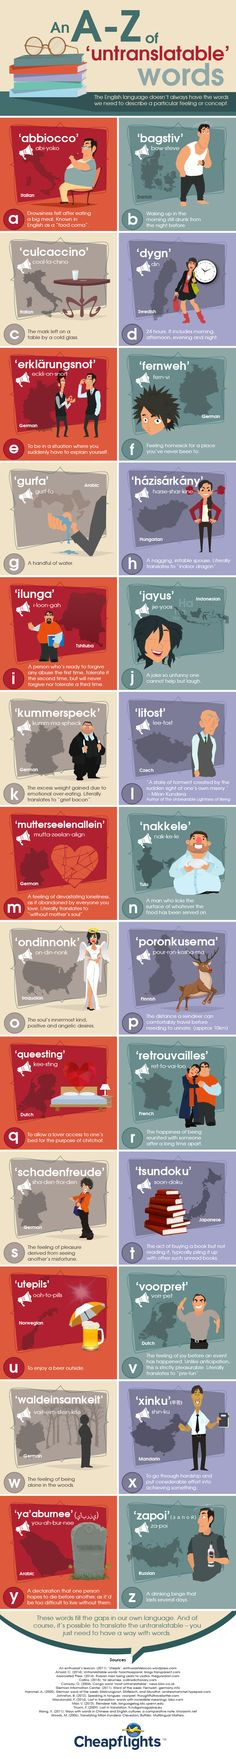 An A-Z of 'Untranslatable' Words #infographic #Education #Language #English